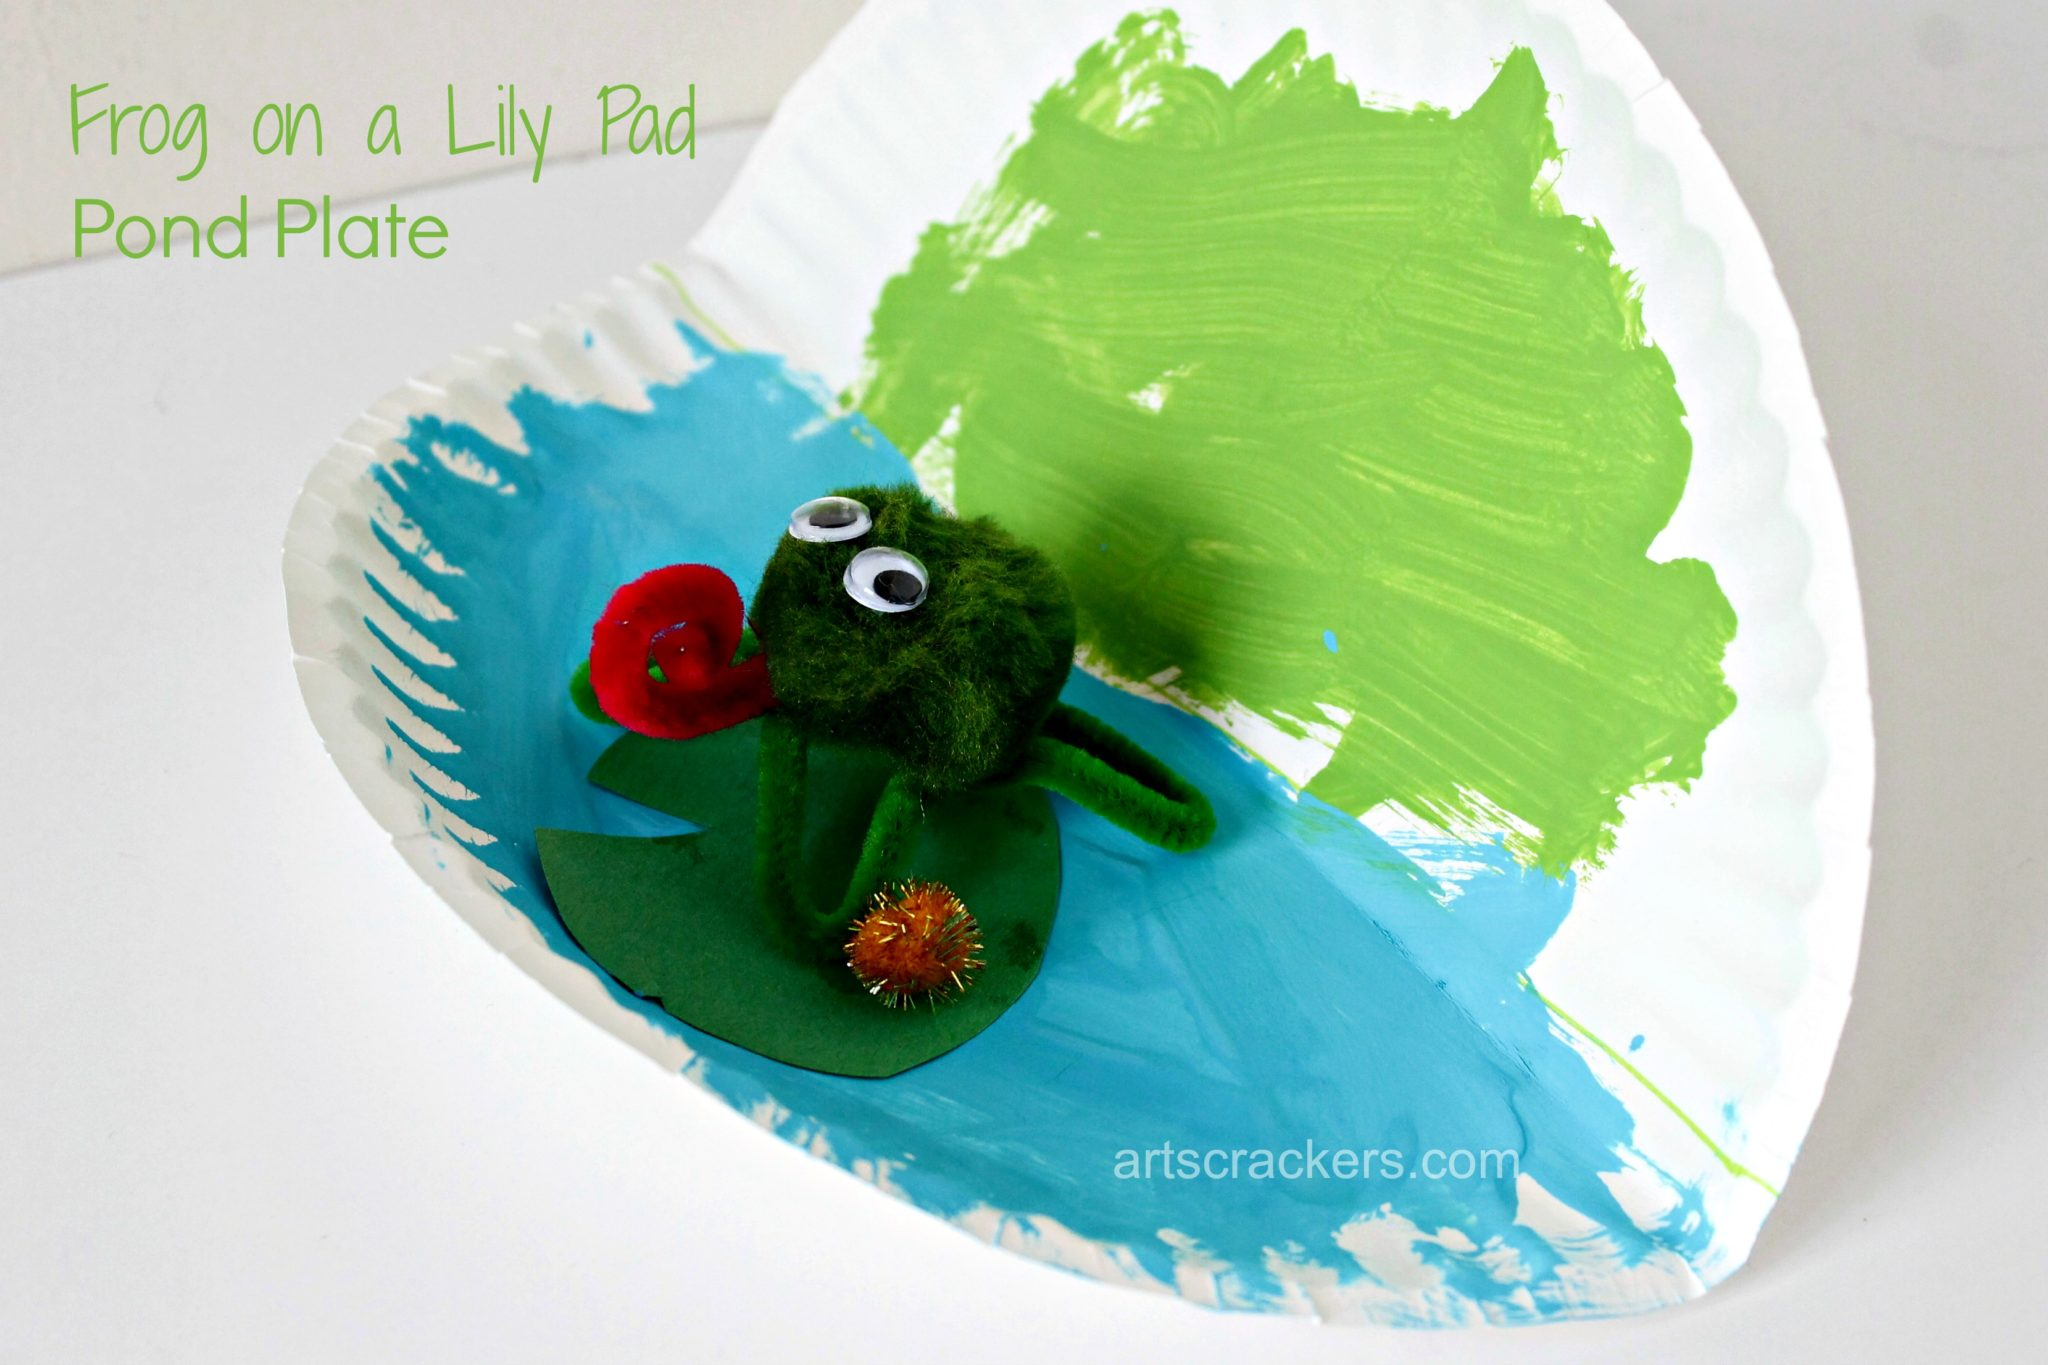 Frog on a Lily Pad Pond Plate Step Kid Made. Click the picture to read the instructions and get bonus ideas.